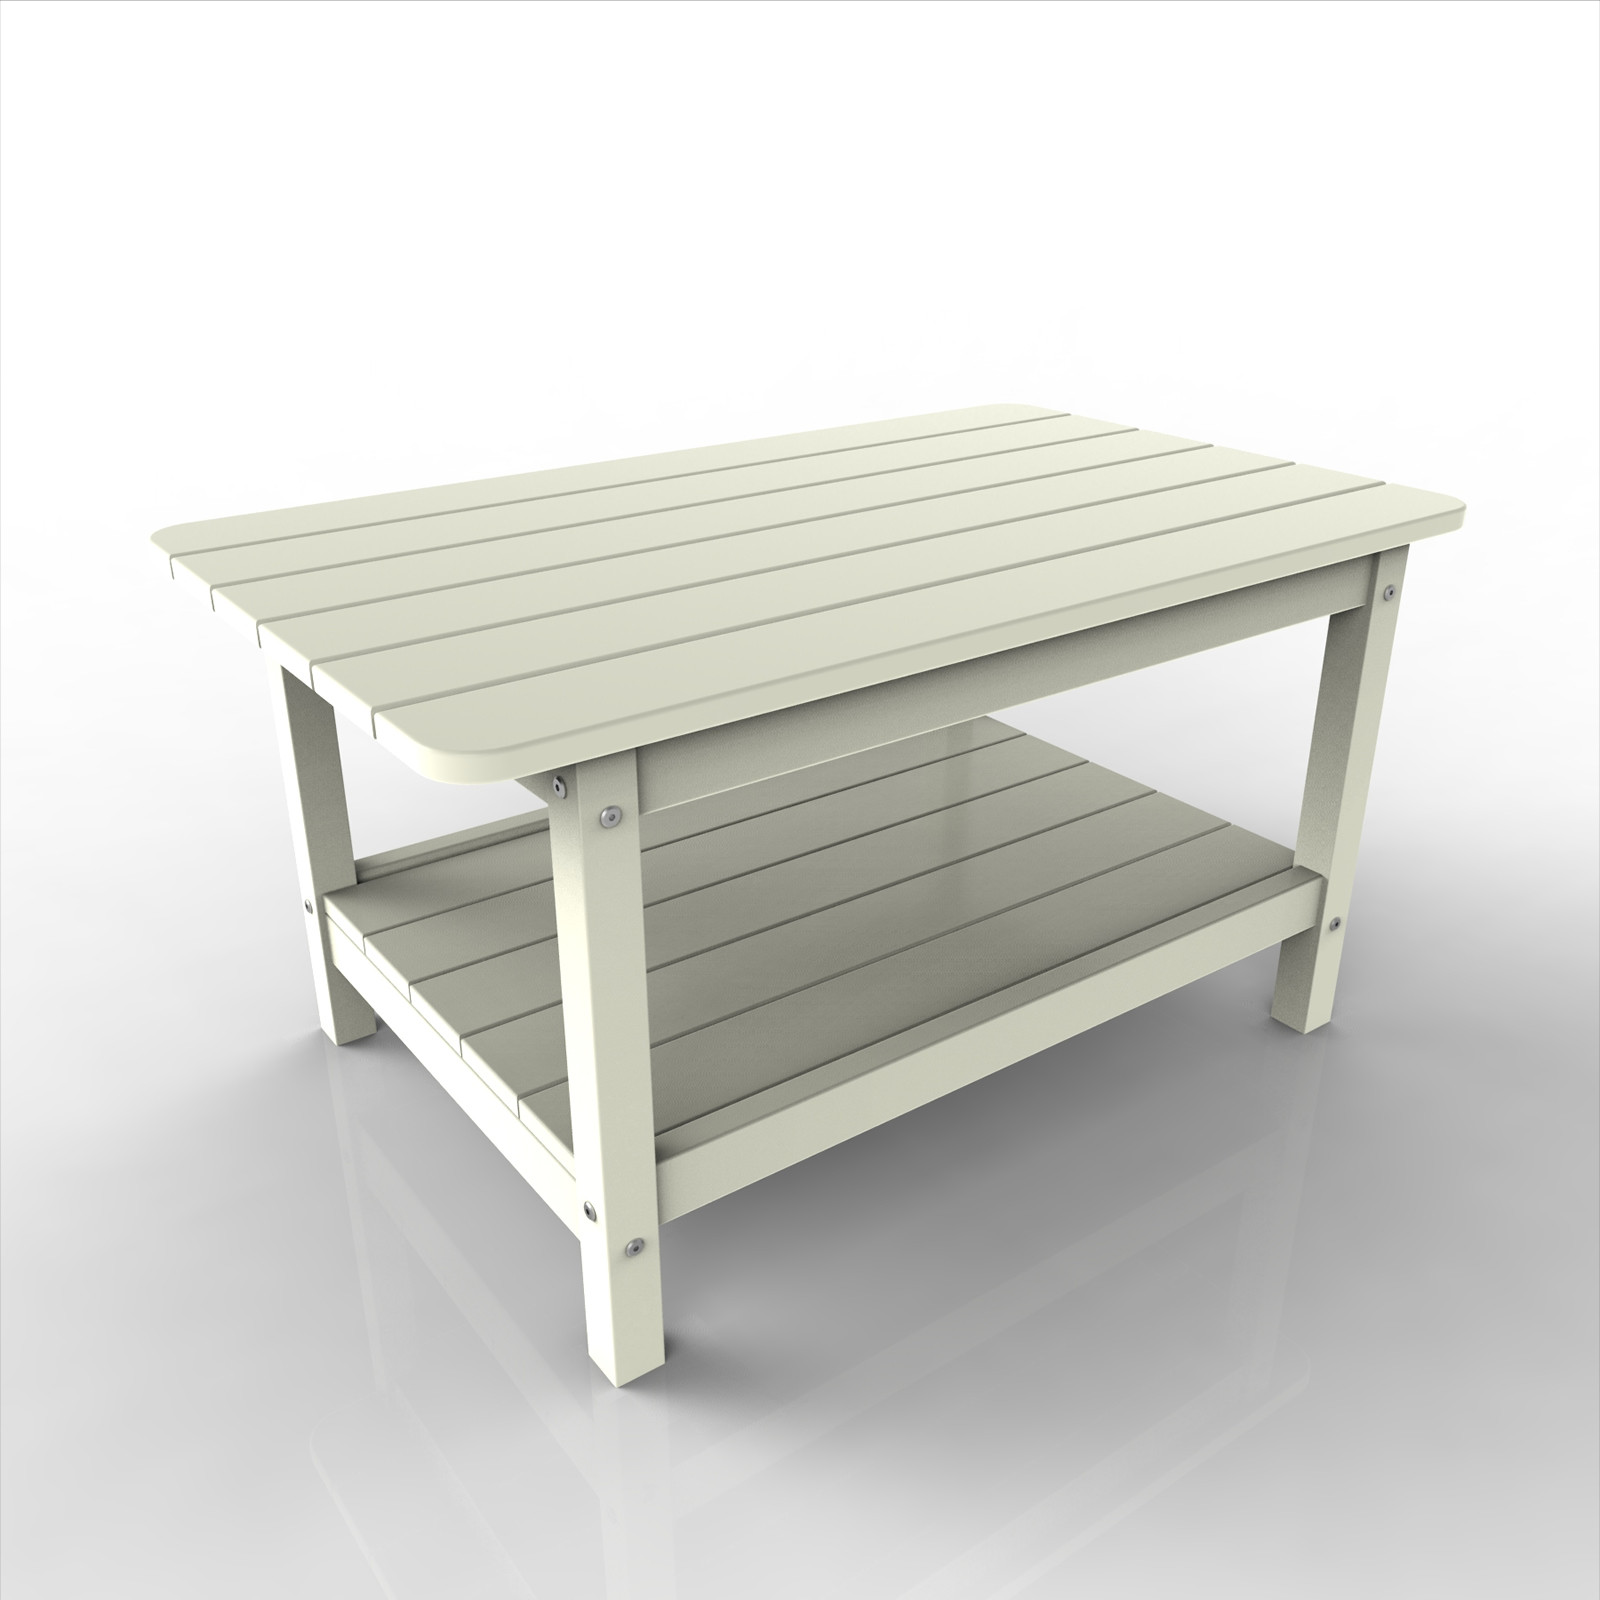 Malibu Outdoor 22 in x 36 in Coffee Table